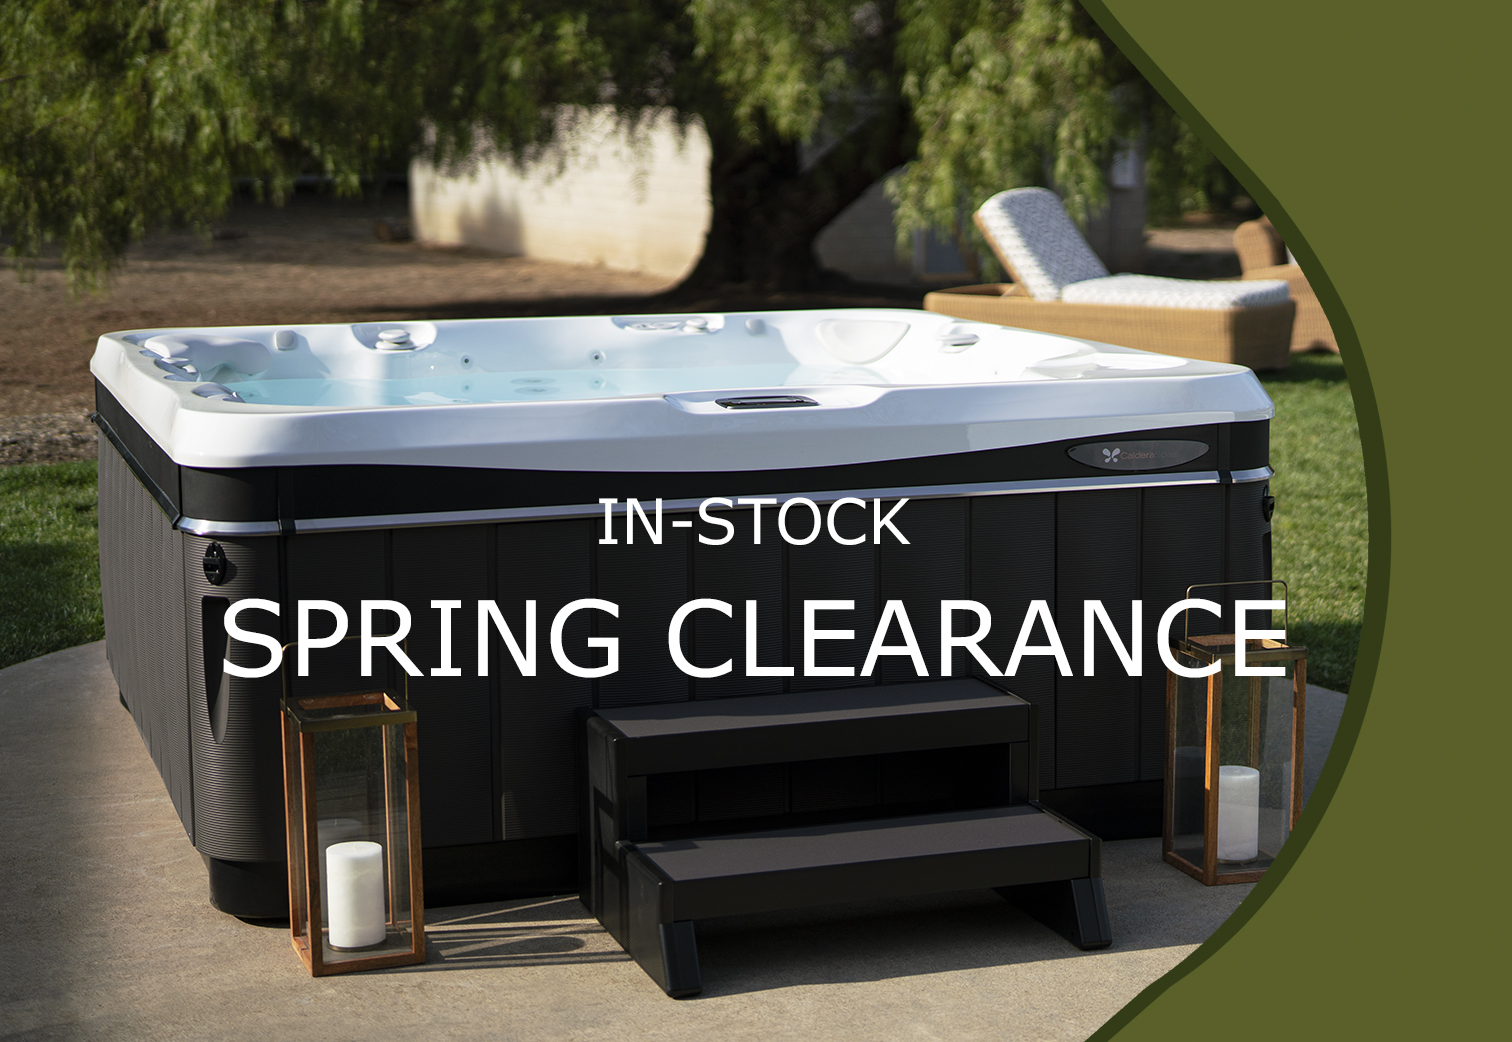 In-Stock Spring Hot Tub Clearance